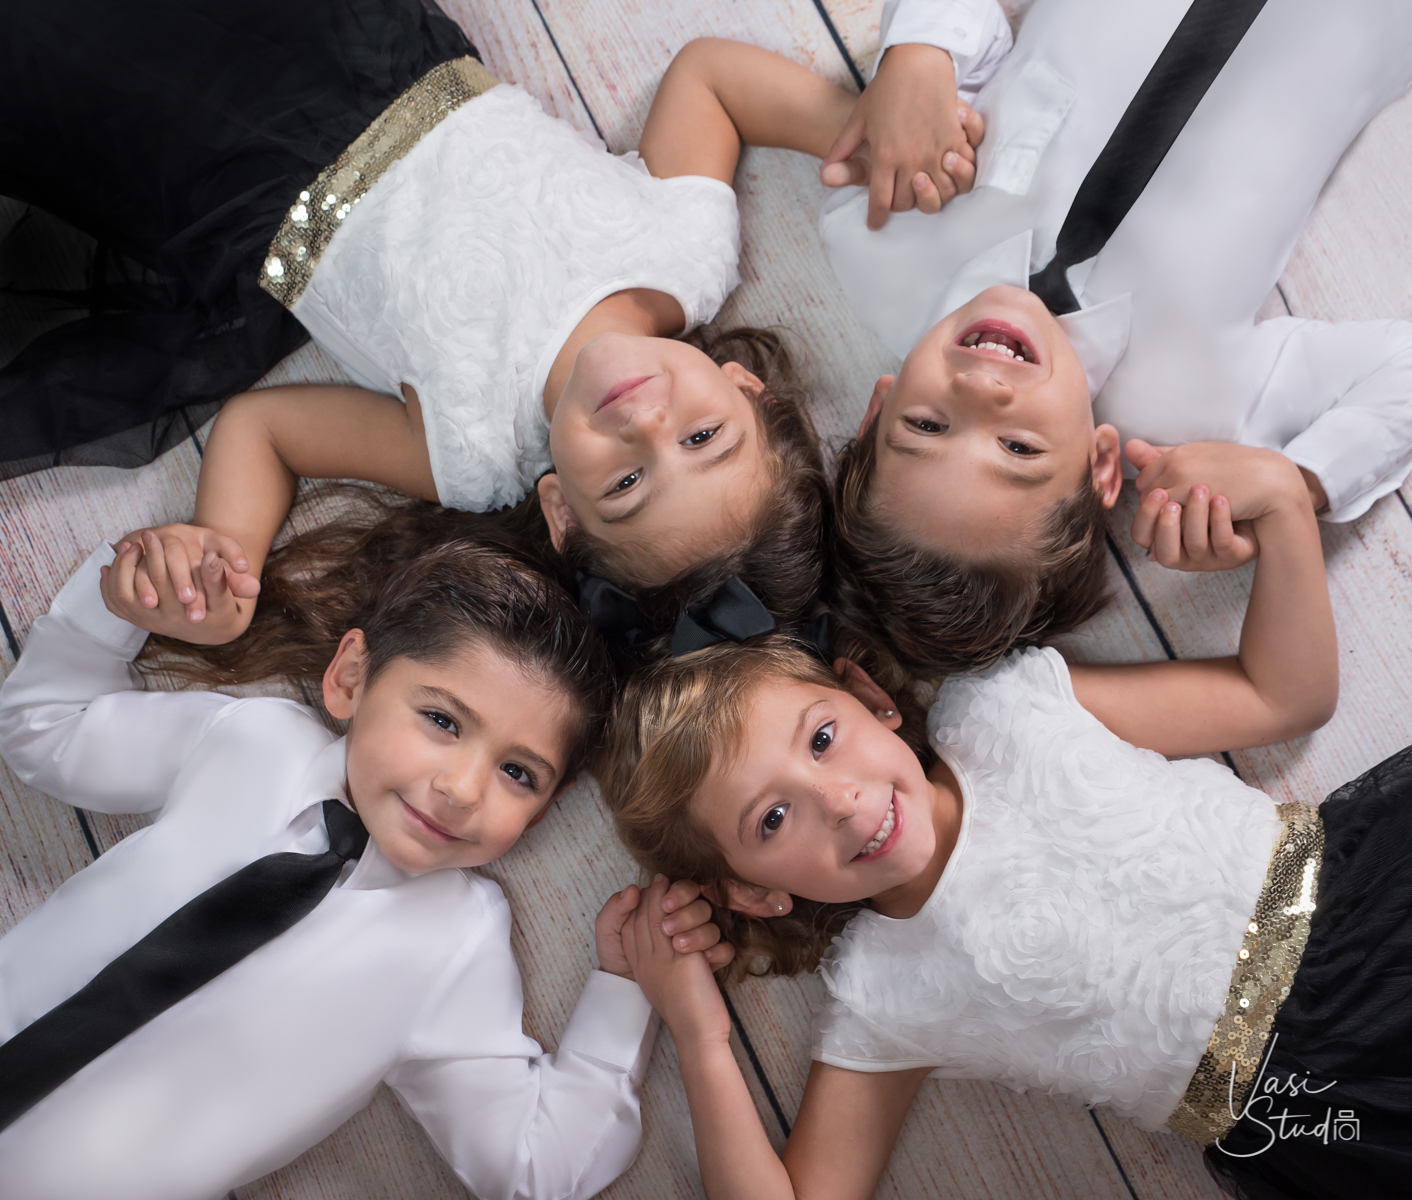 Family photographer in Delray Beach, FL.